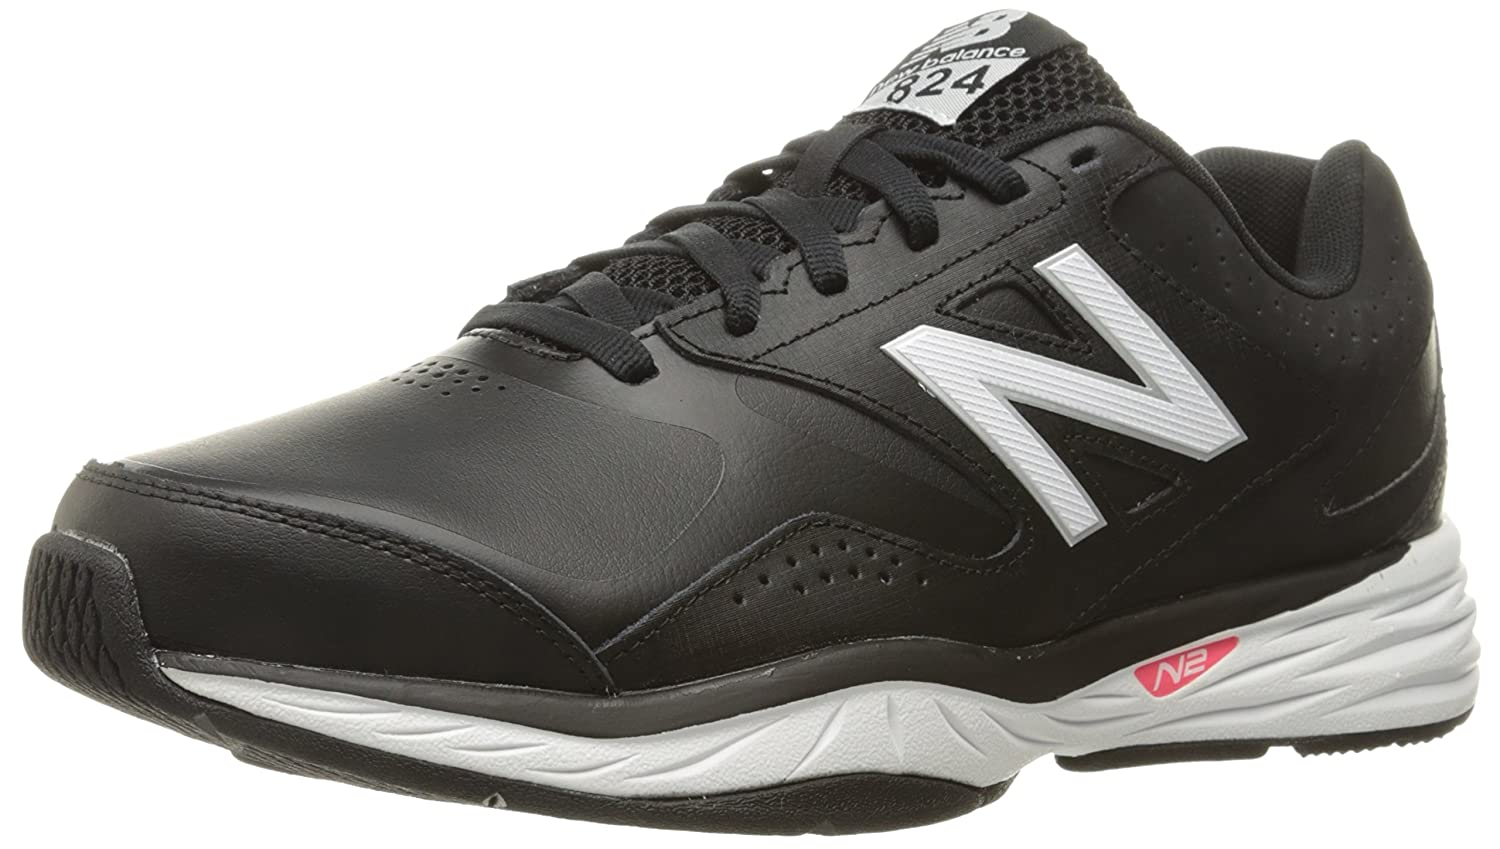 New Balance Women's WX824 Training Shoe B01FSILORQ 5 B(M) US|Black